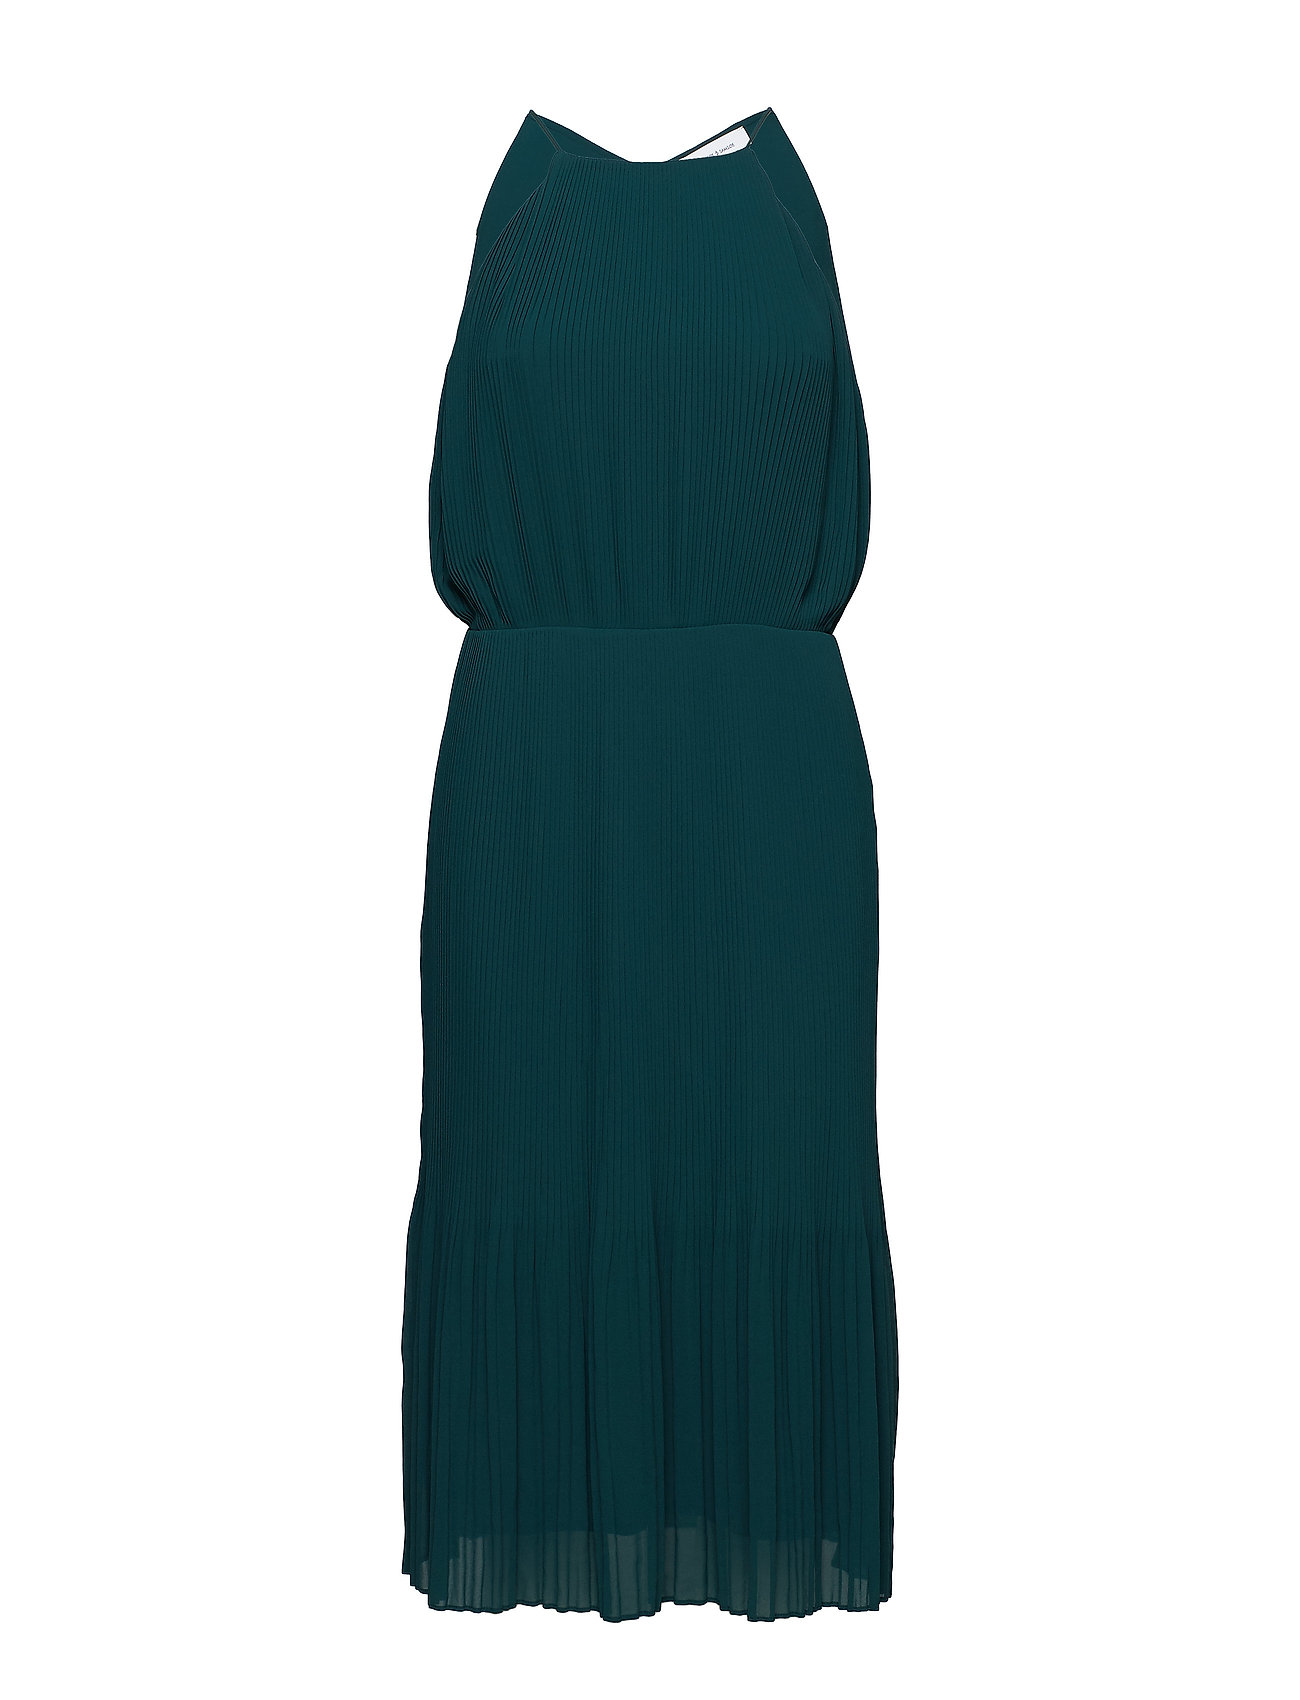 Samsøe & Samsøe Millow dress 6621 - SEA MOSS